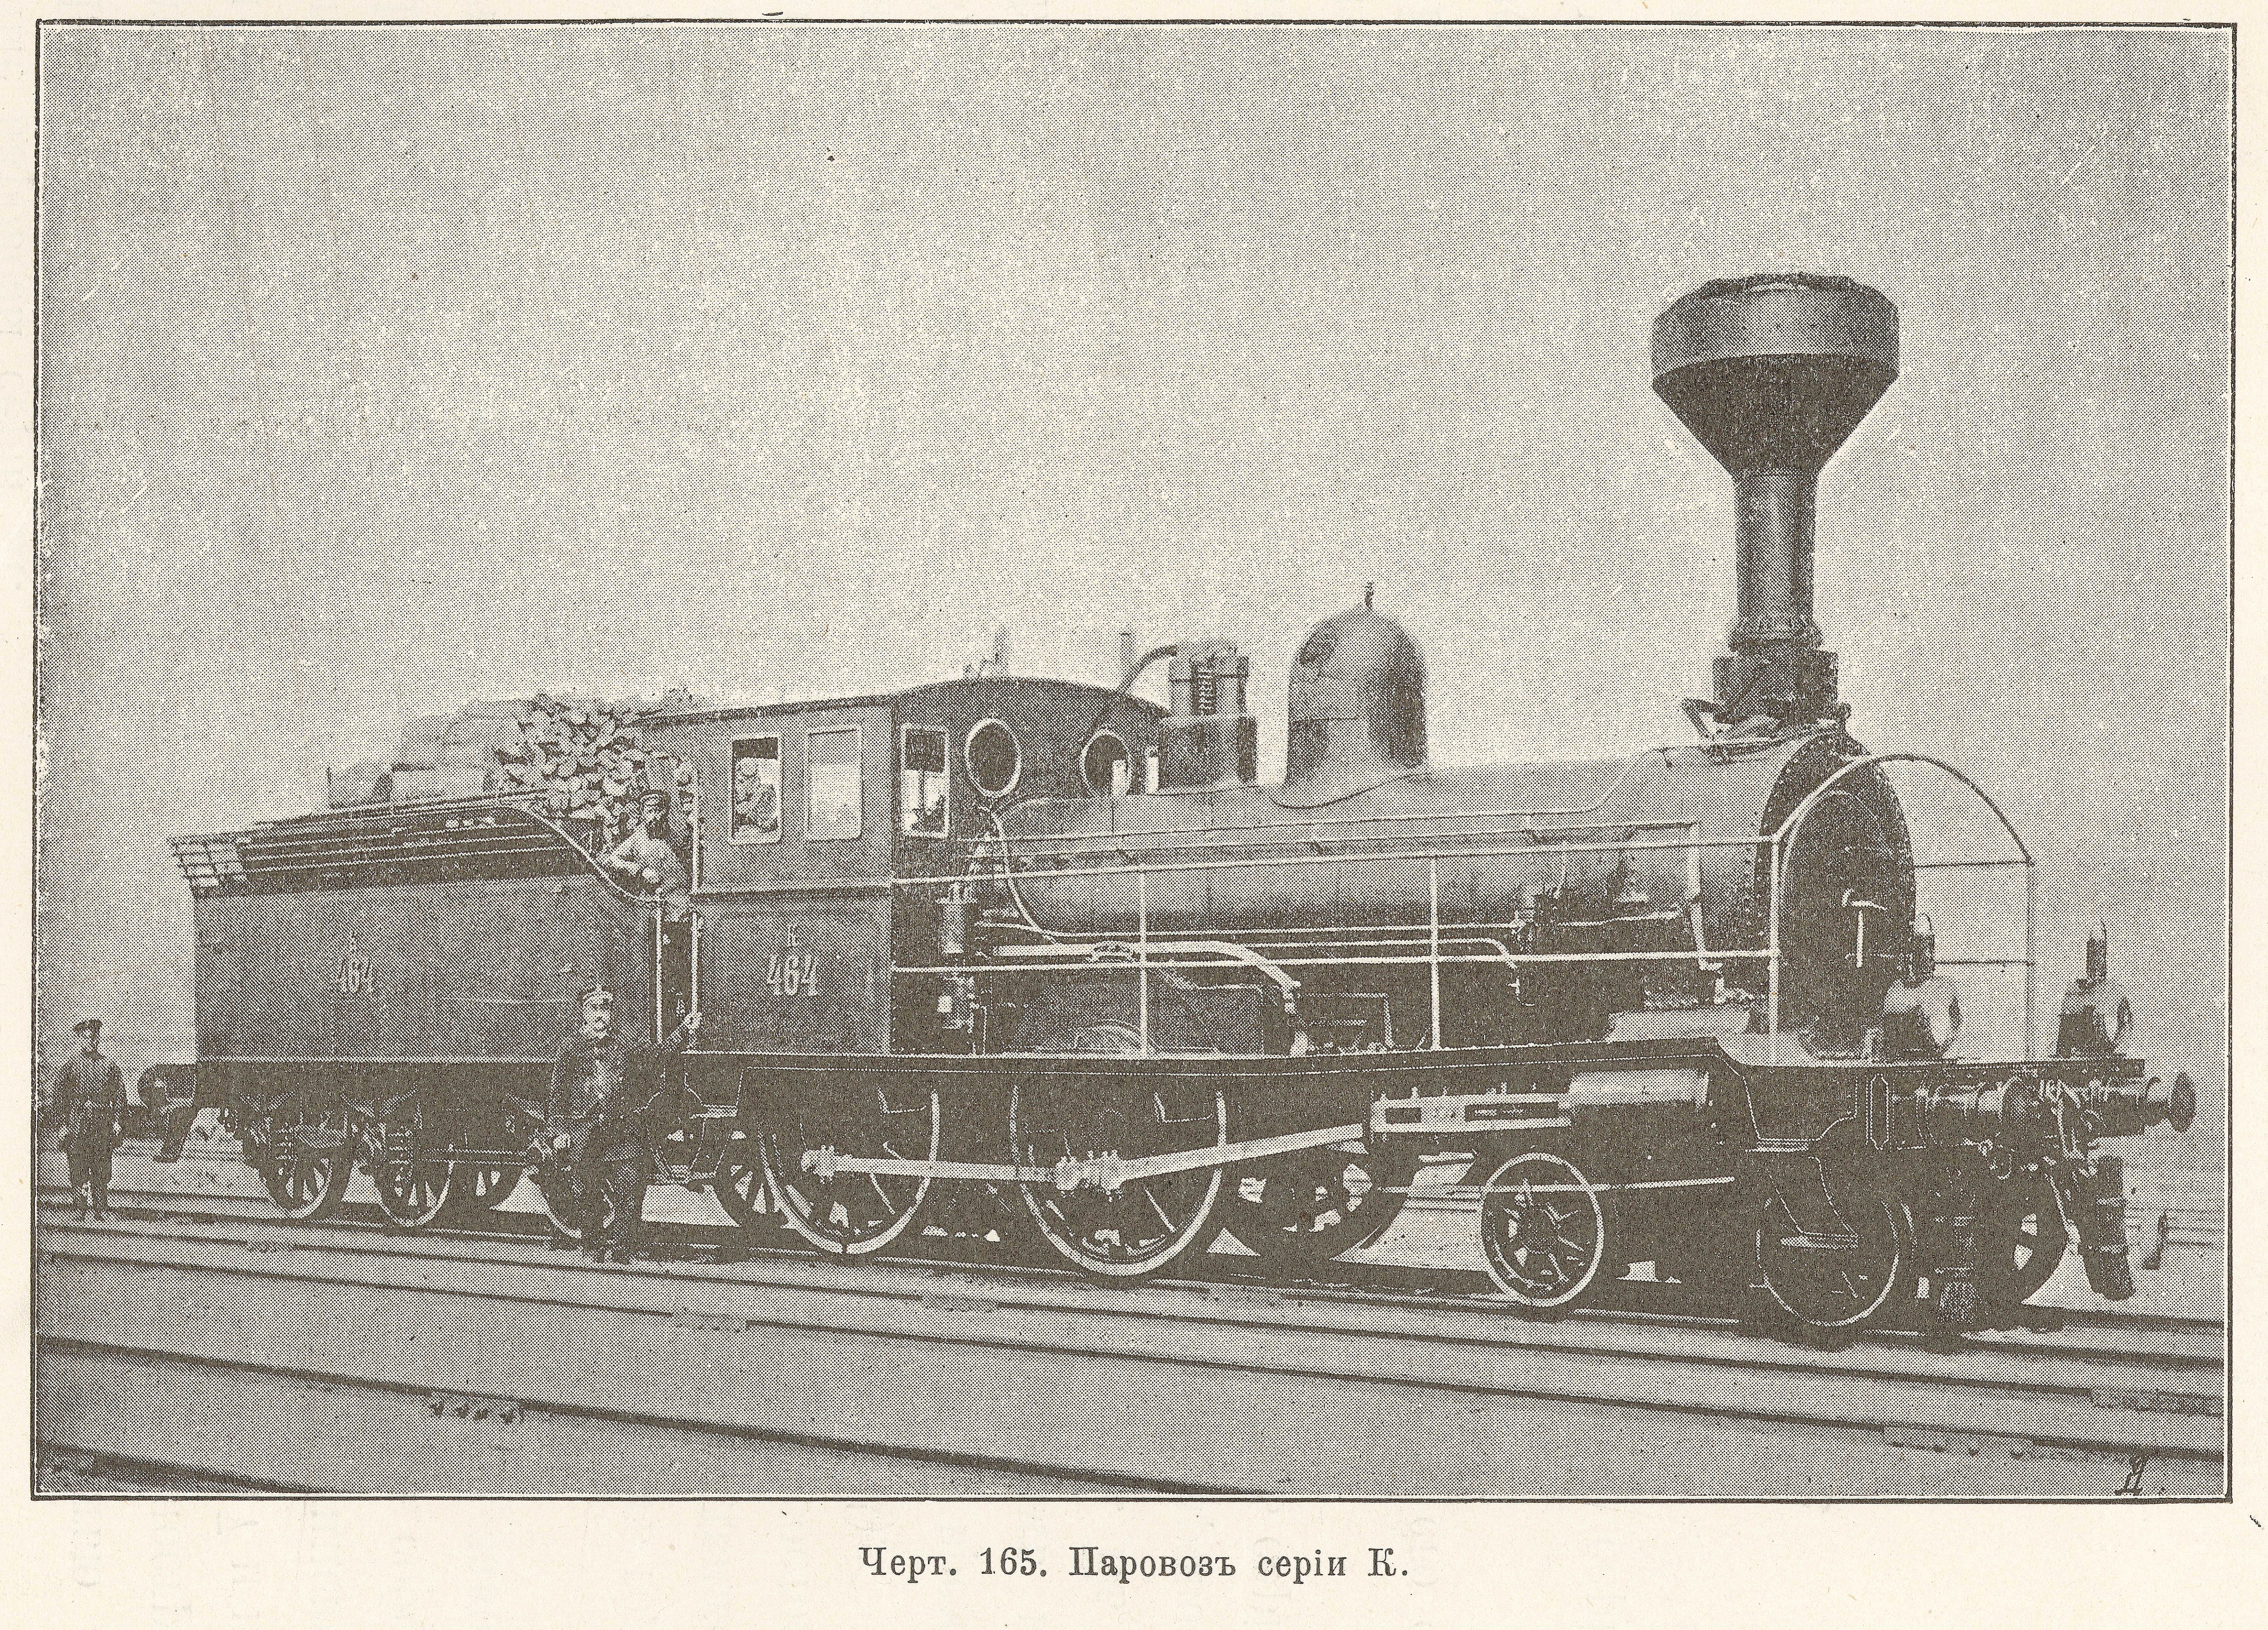 Series K Engine (photo), which could have plausibly been the locomotive that pulled Anna's train (JPG), courtesy Sergei Kiselev